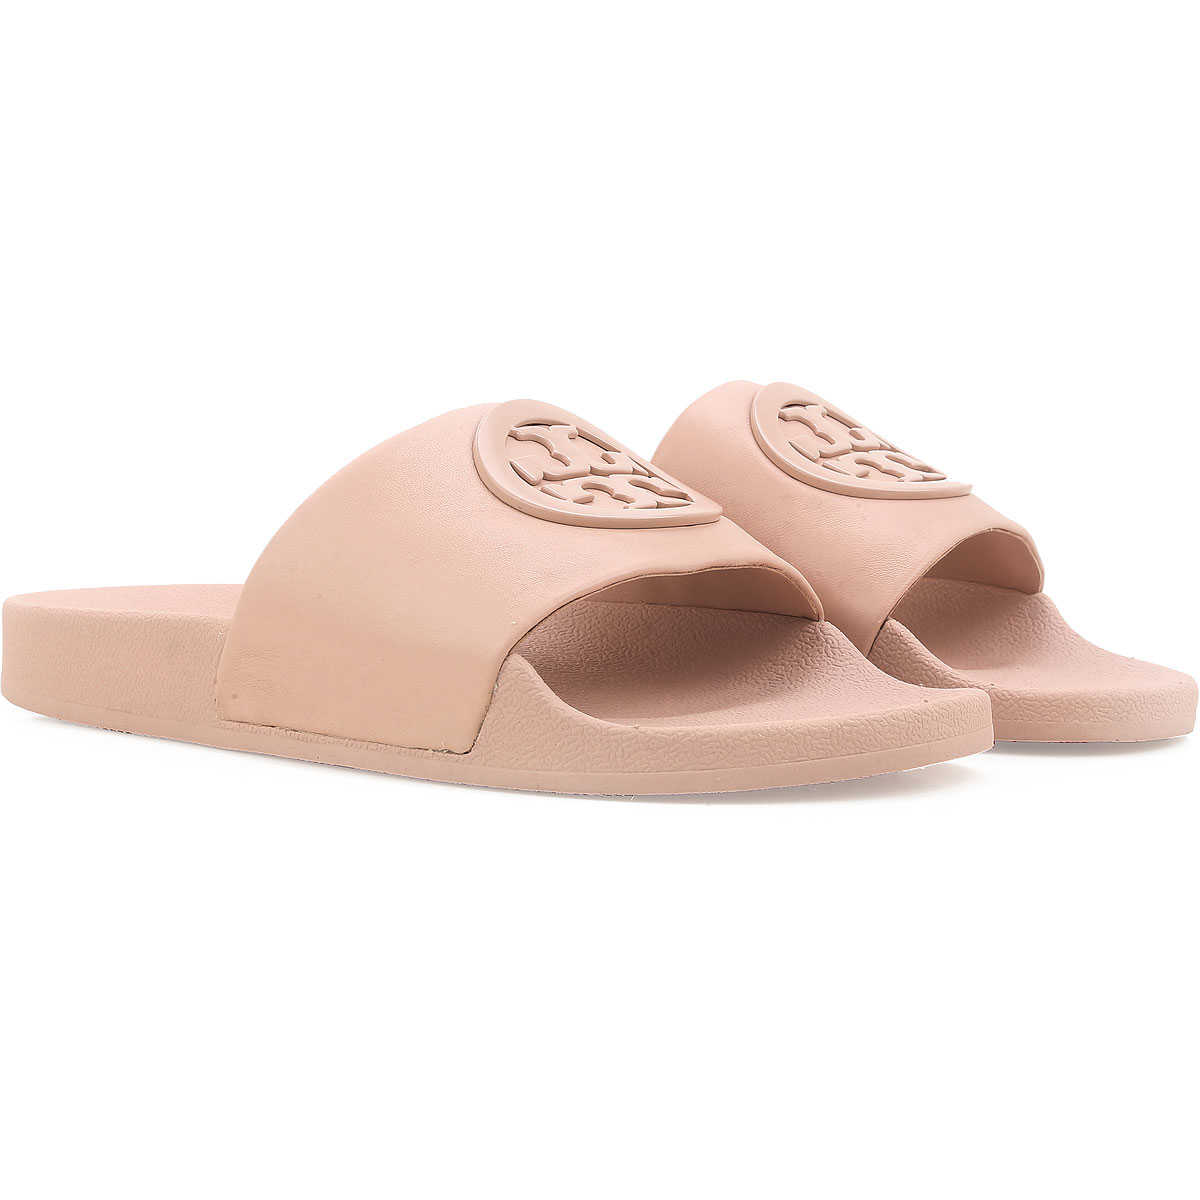 Tory Burch Sandals for Women On Sale in Outlet Shell Pink SE - GOOFASH